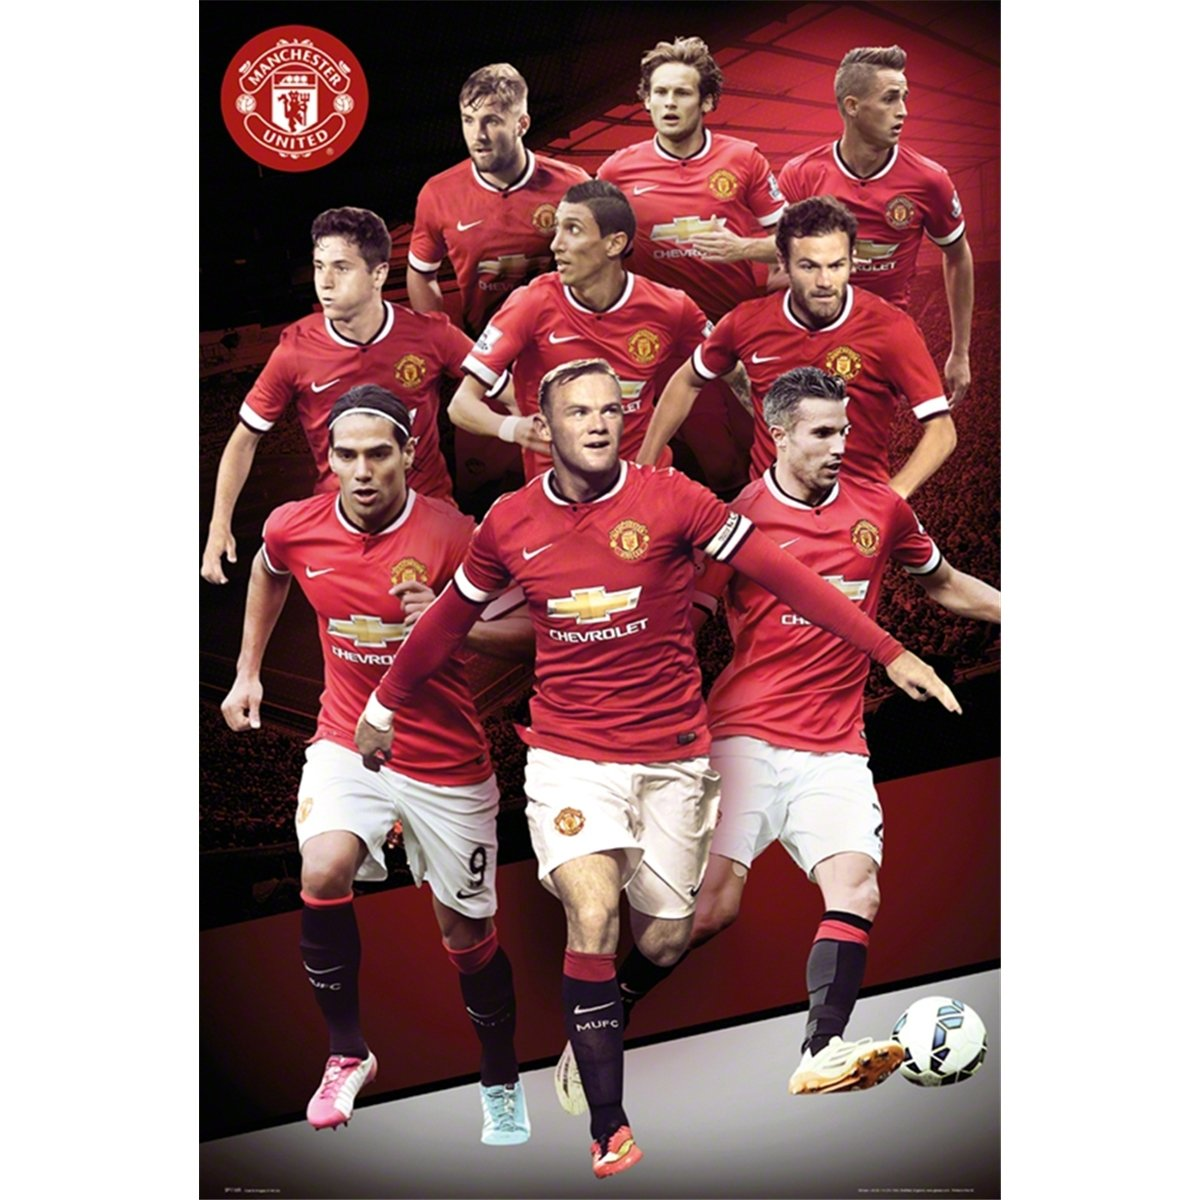 abffed9bcda7 Manchester United Player Collage 2014-2015 24